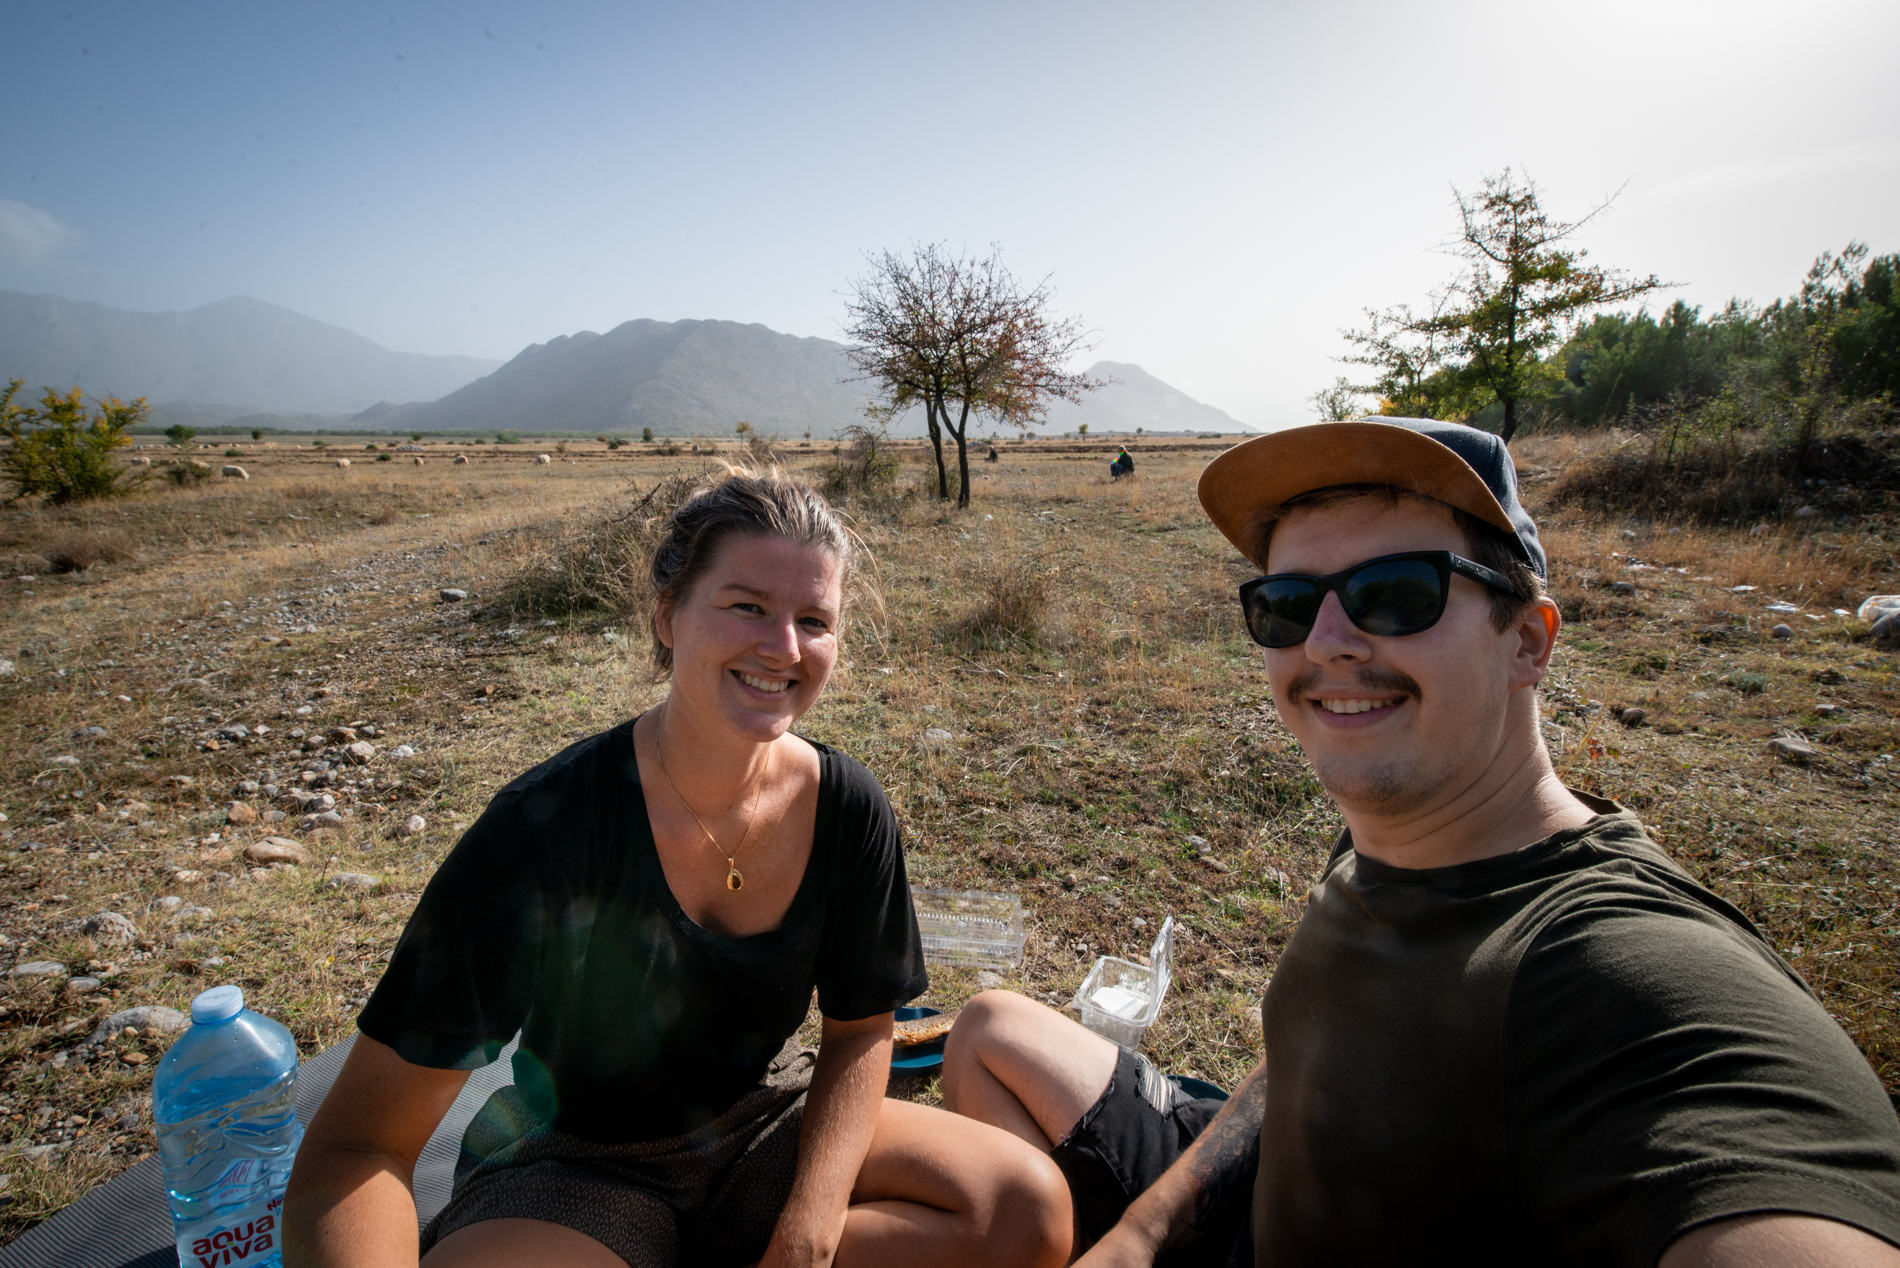 Lunch time for Ellis and me at the fields of Albania, with the mountains on the background.